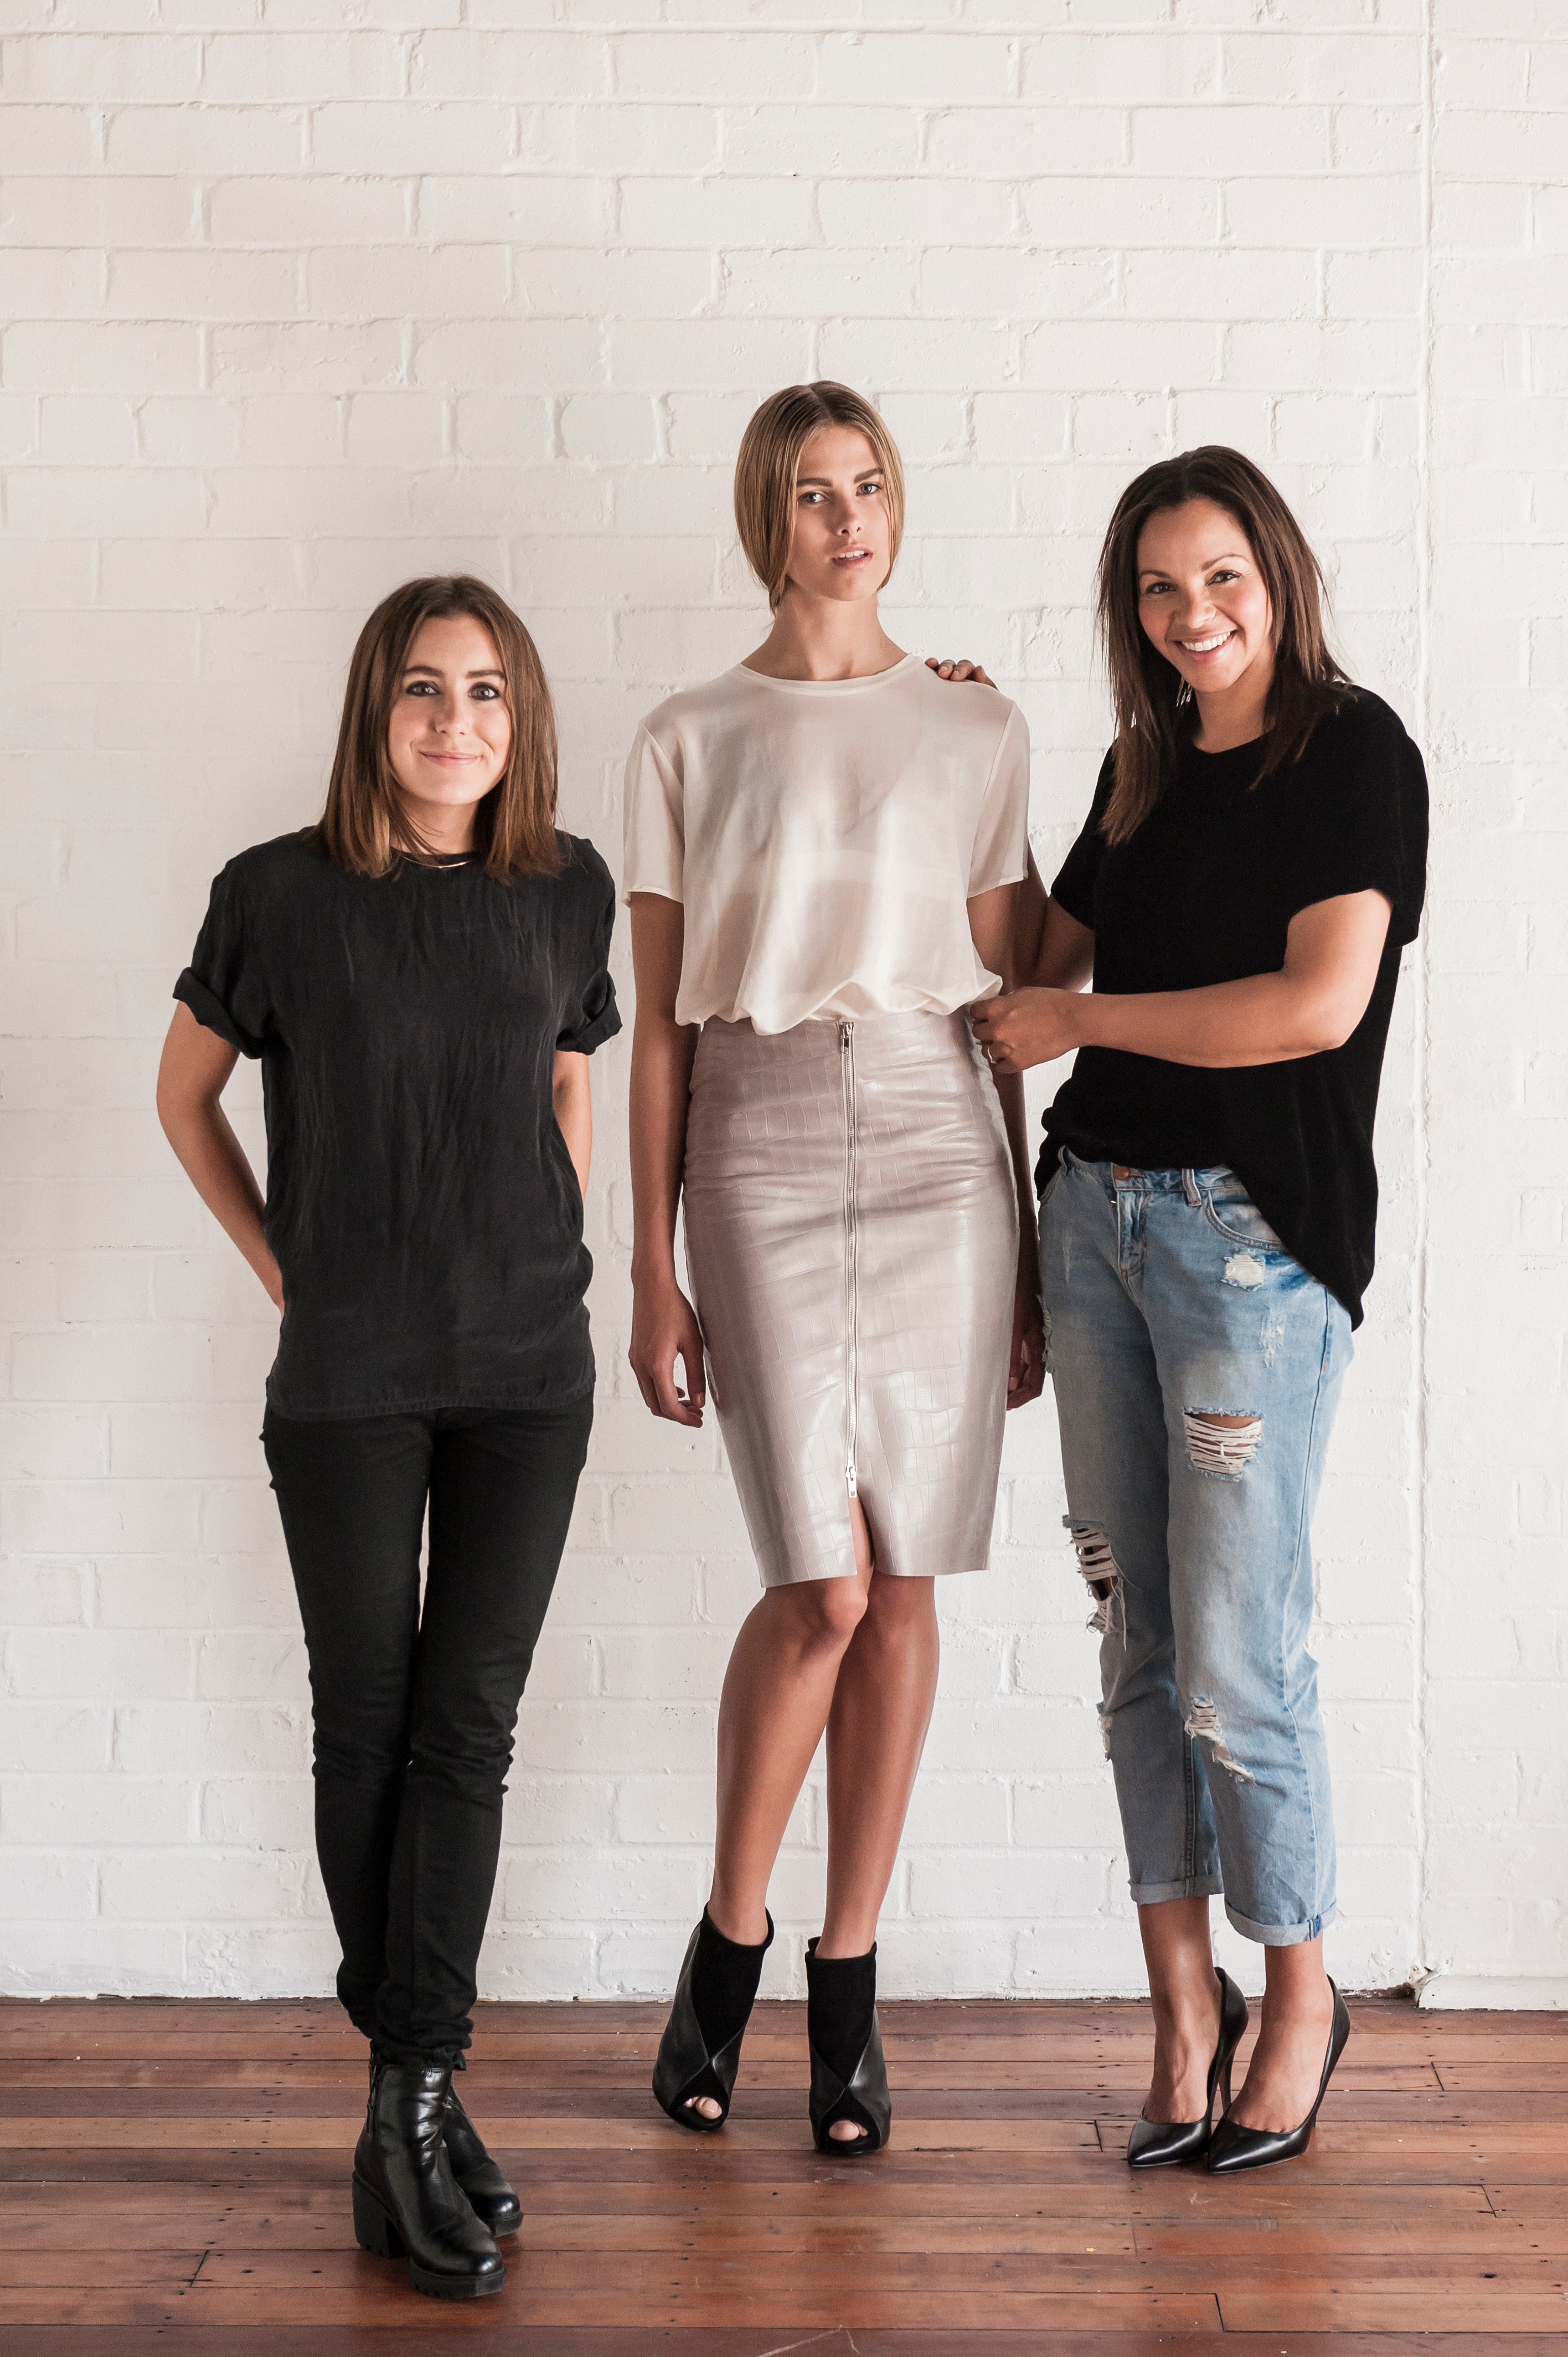 Designers and models for Khalo